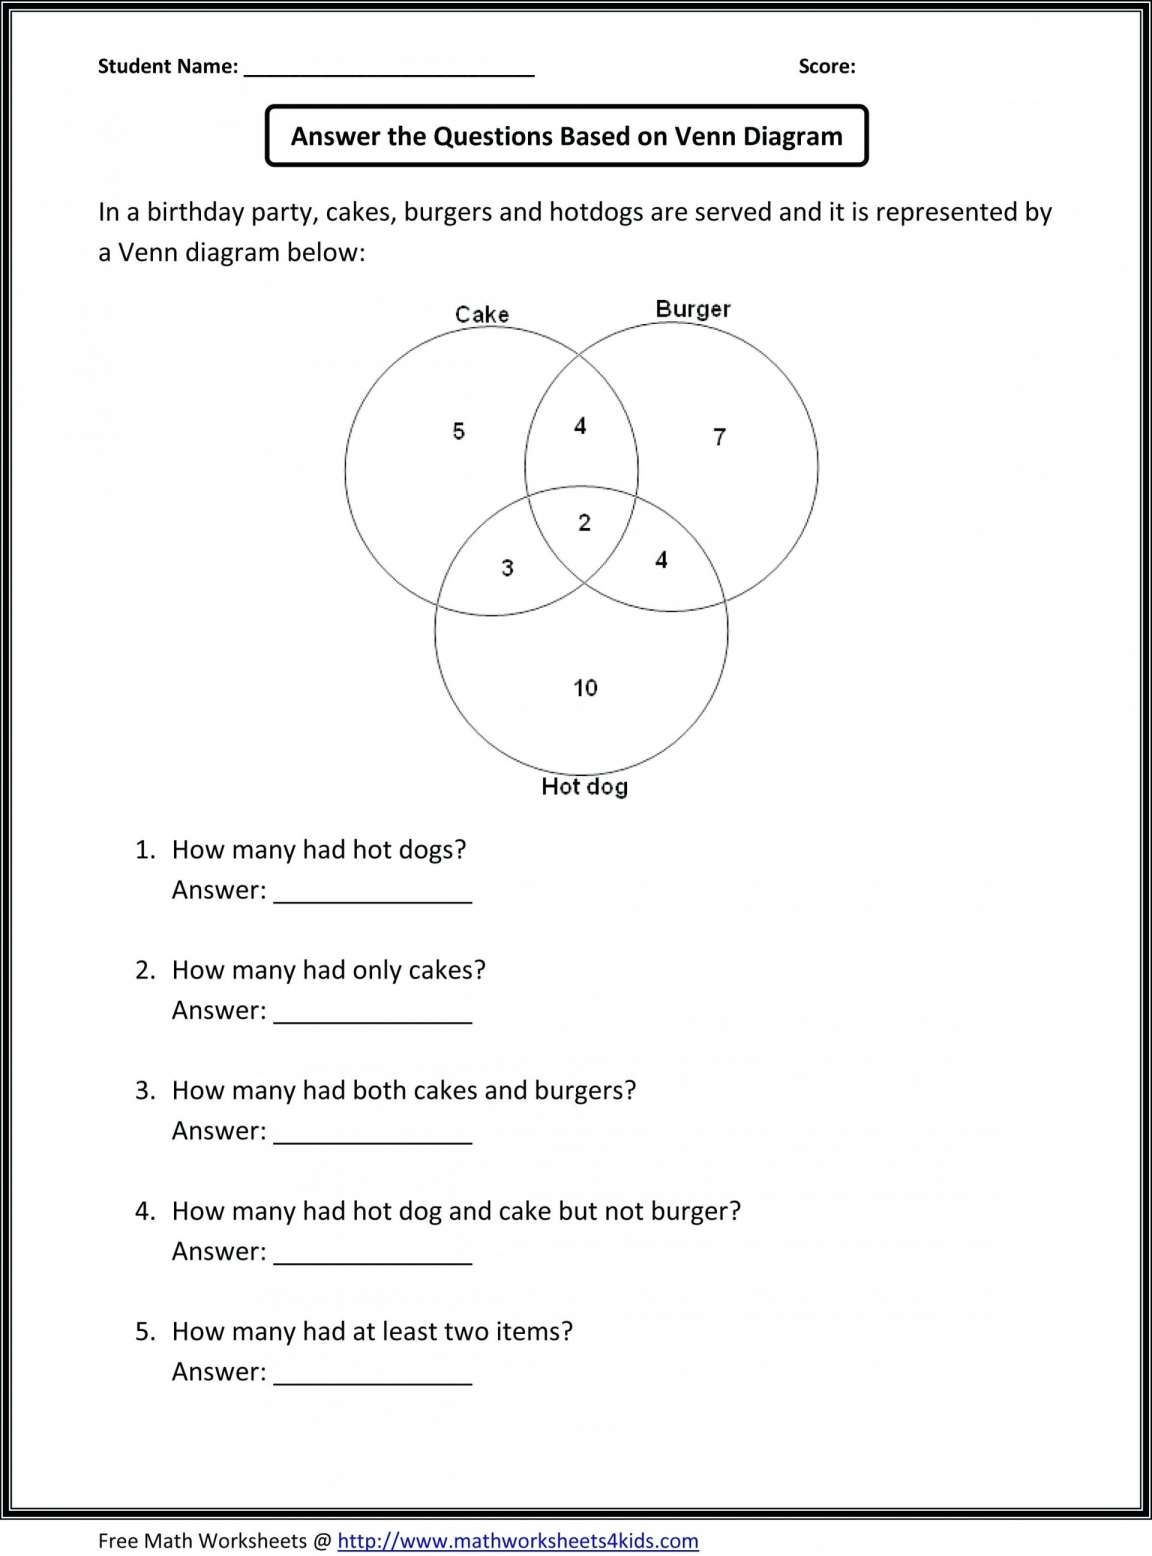 Venn Diagram Problems Middle School Manual Guide